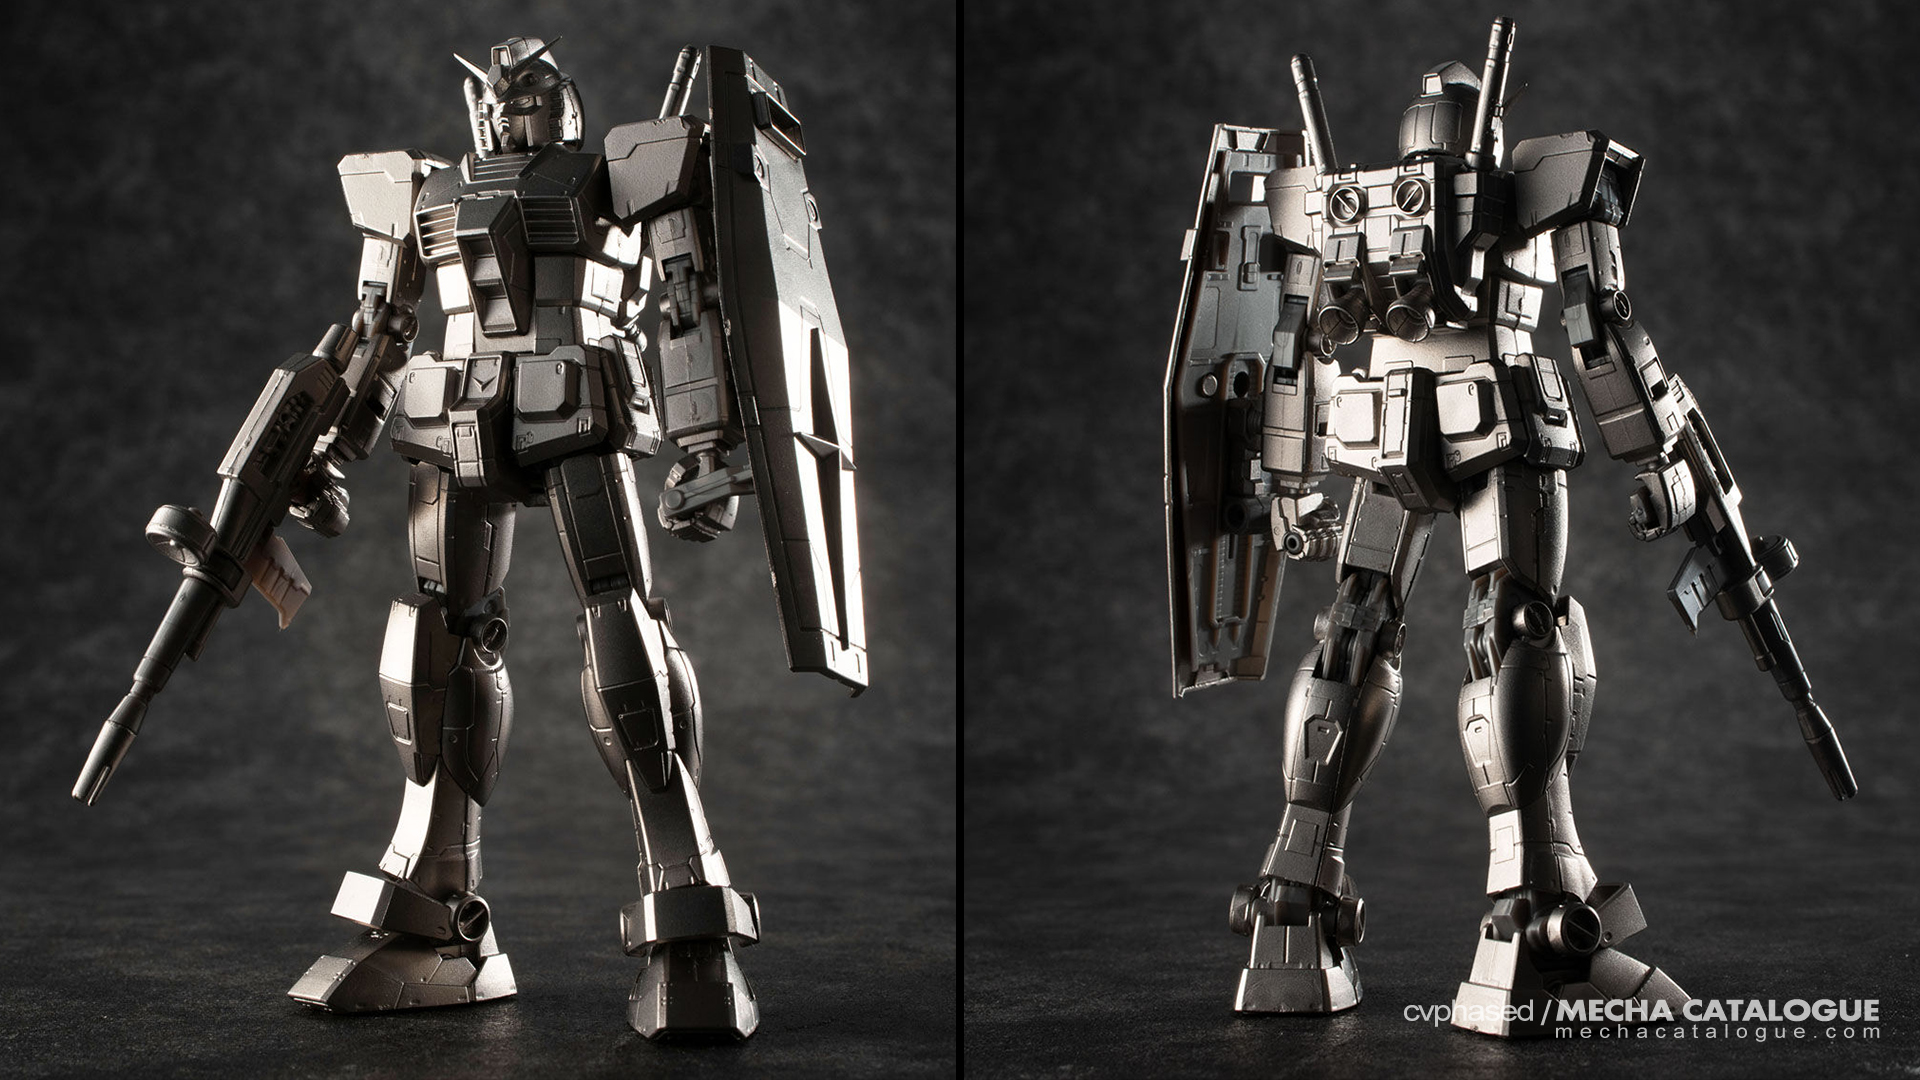 That's 220,000 JPY Expensive! Gundarium Alloy Model RX-78-2 Gundam